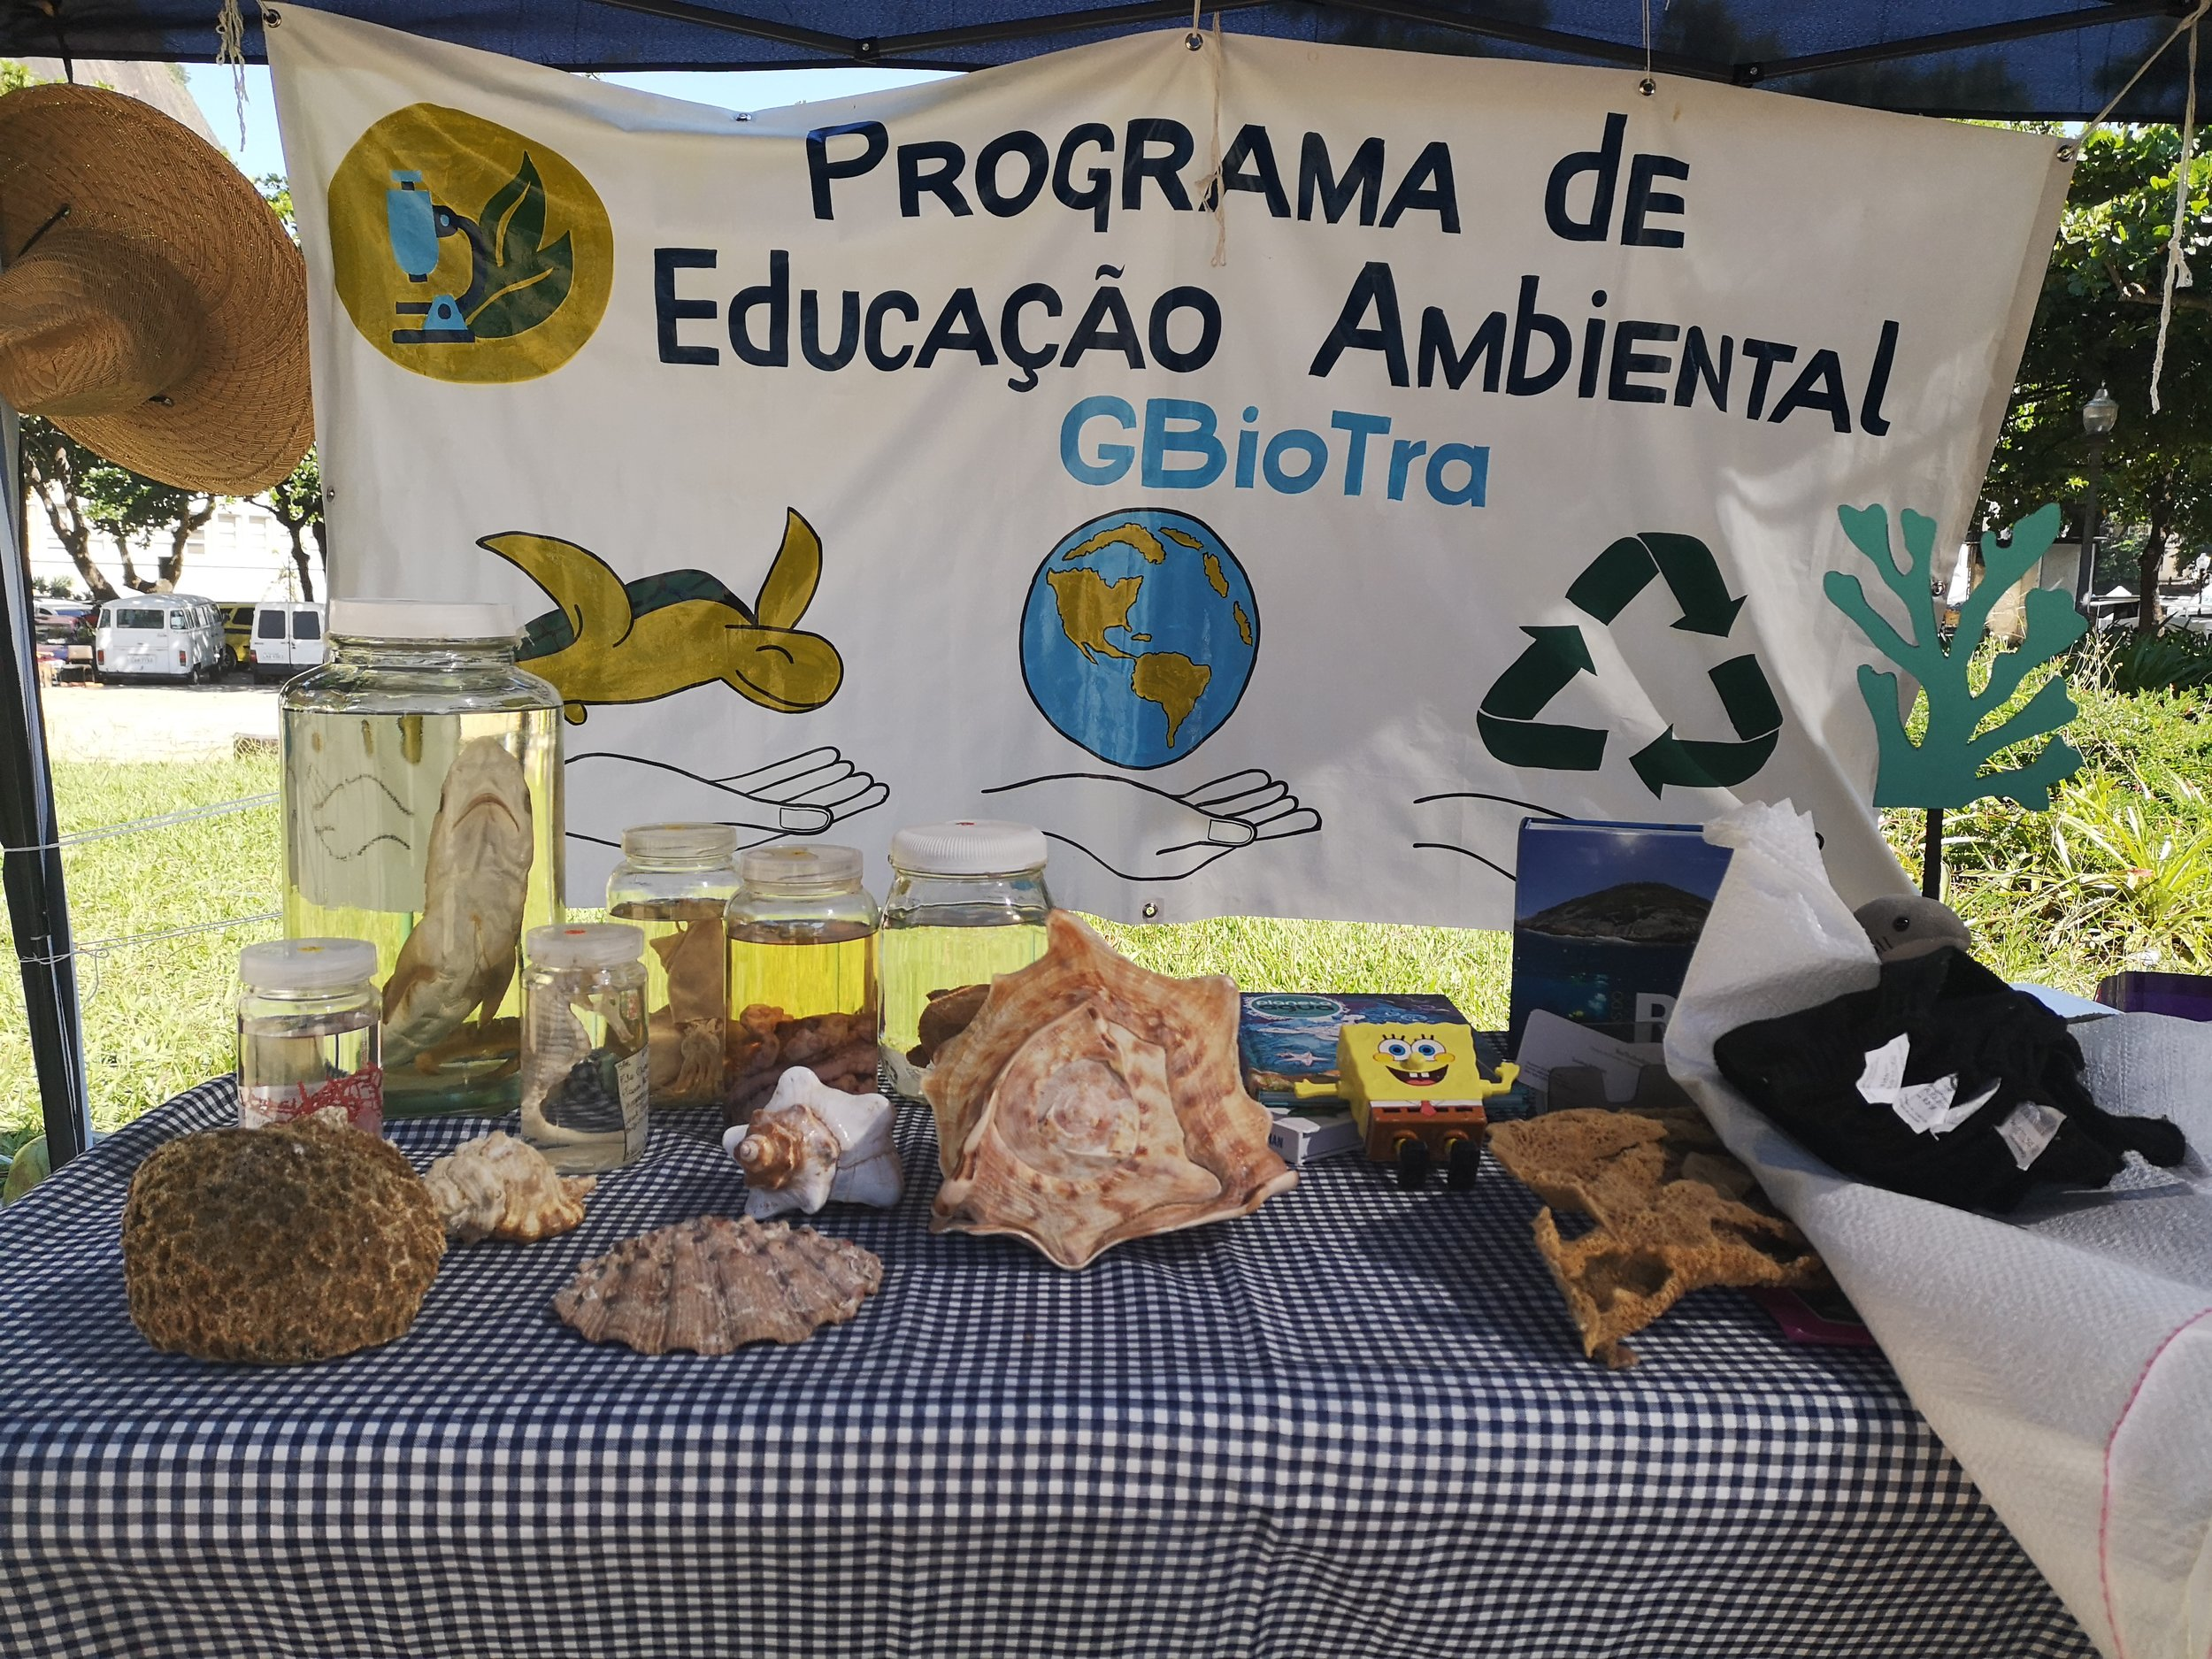 Educating people about biodiversity in the Guanabara Bay.